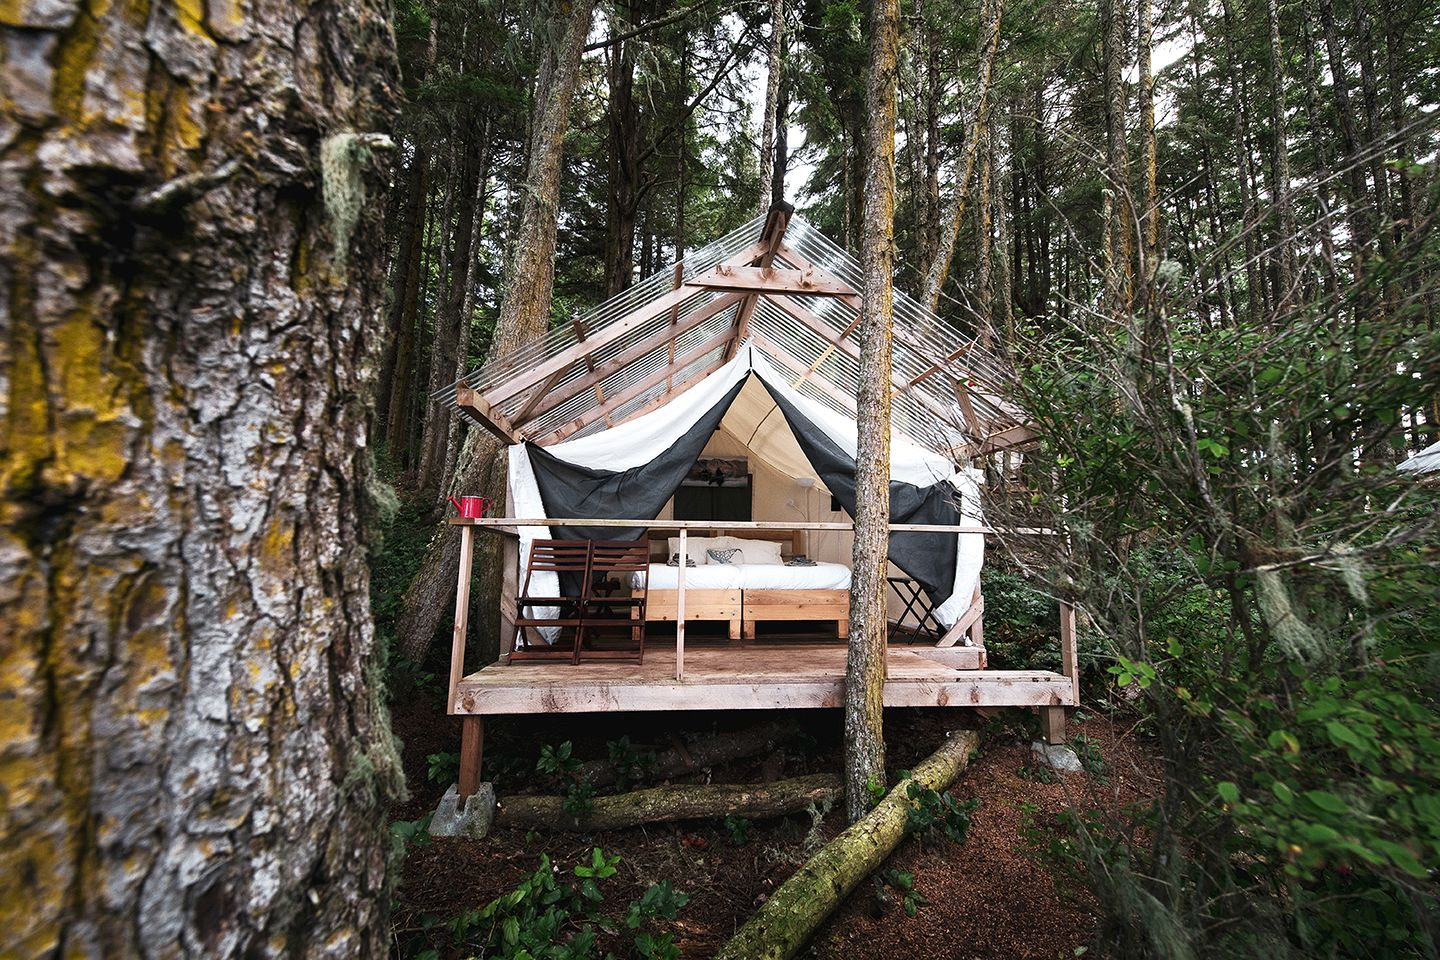 Safari Tents (Swanson Island, British Columbia, Canada)